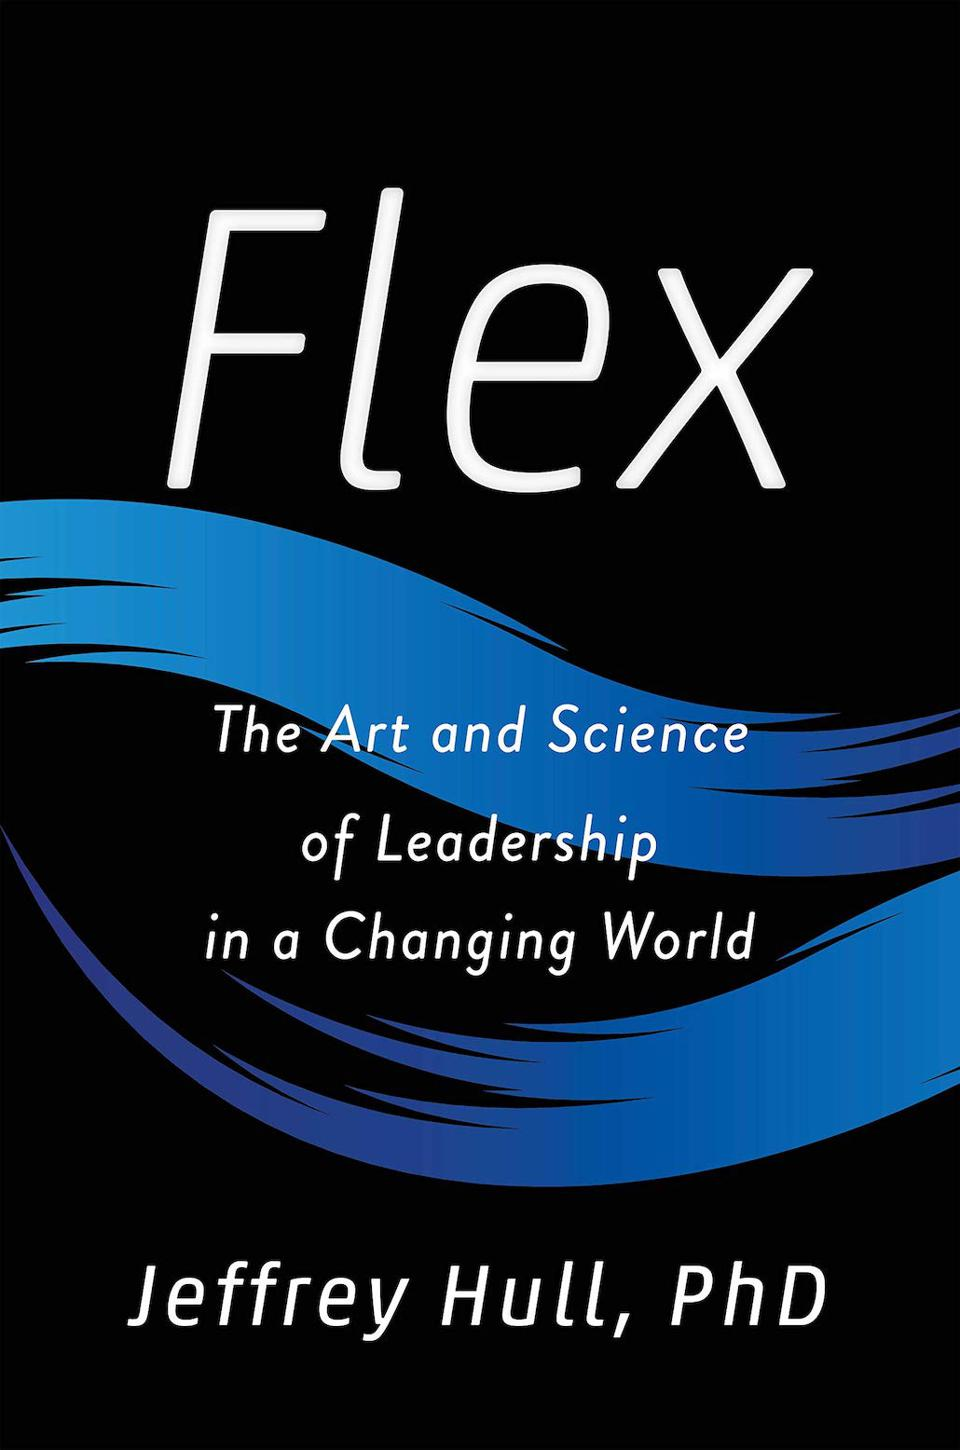 6. Flex: The Art and Science of Leadership in a Changing World by Jeffrey Hull